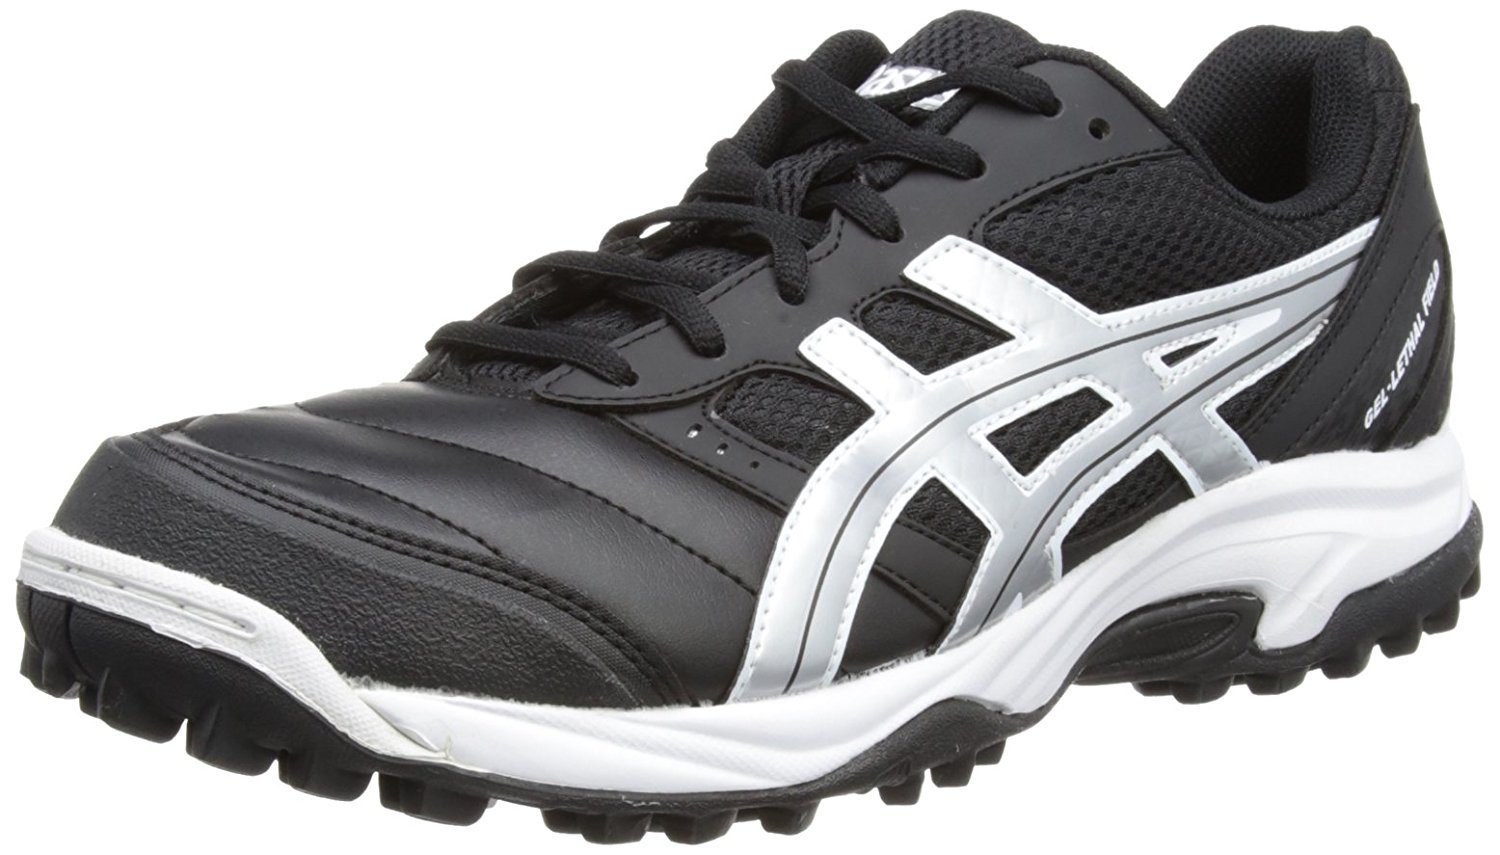 14 Best Turf Shoes images   Turf shoes, Hockey shoes, Shoes